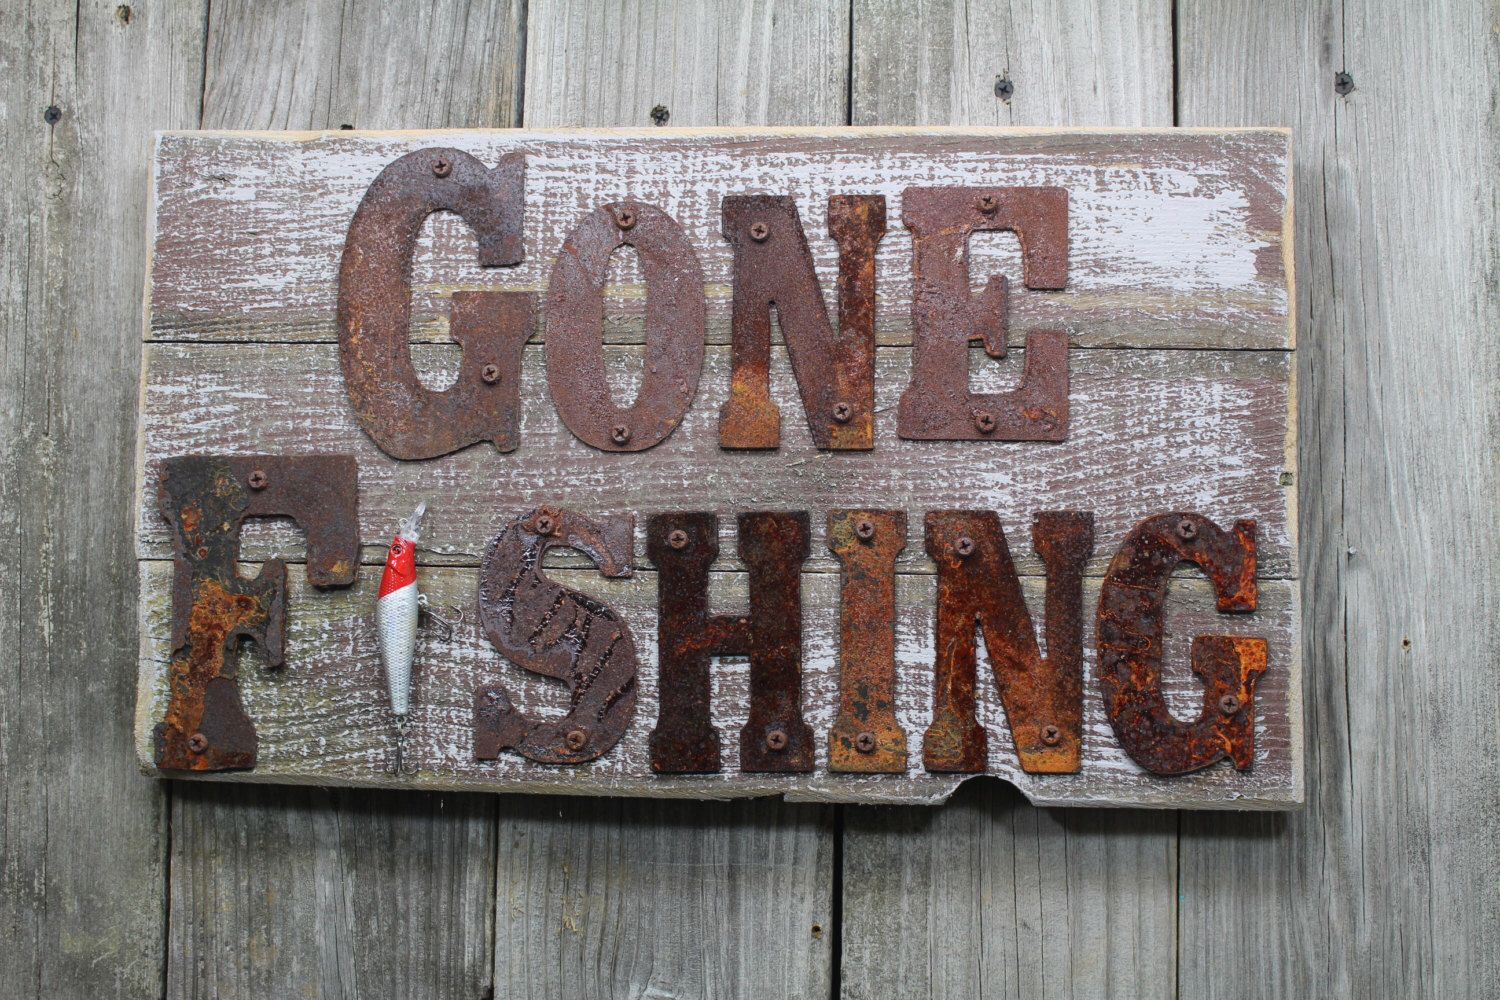 Gone Fishing Signs Decor Gone Fishing Free Shipping Dad Gift Home Decor Fishing Decor